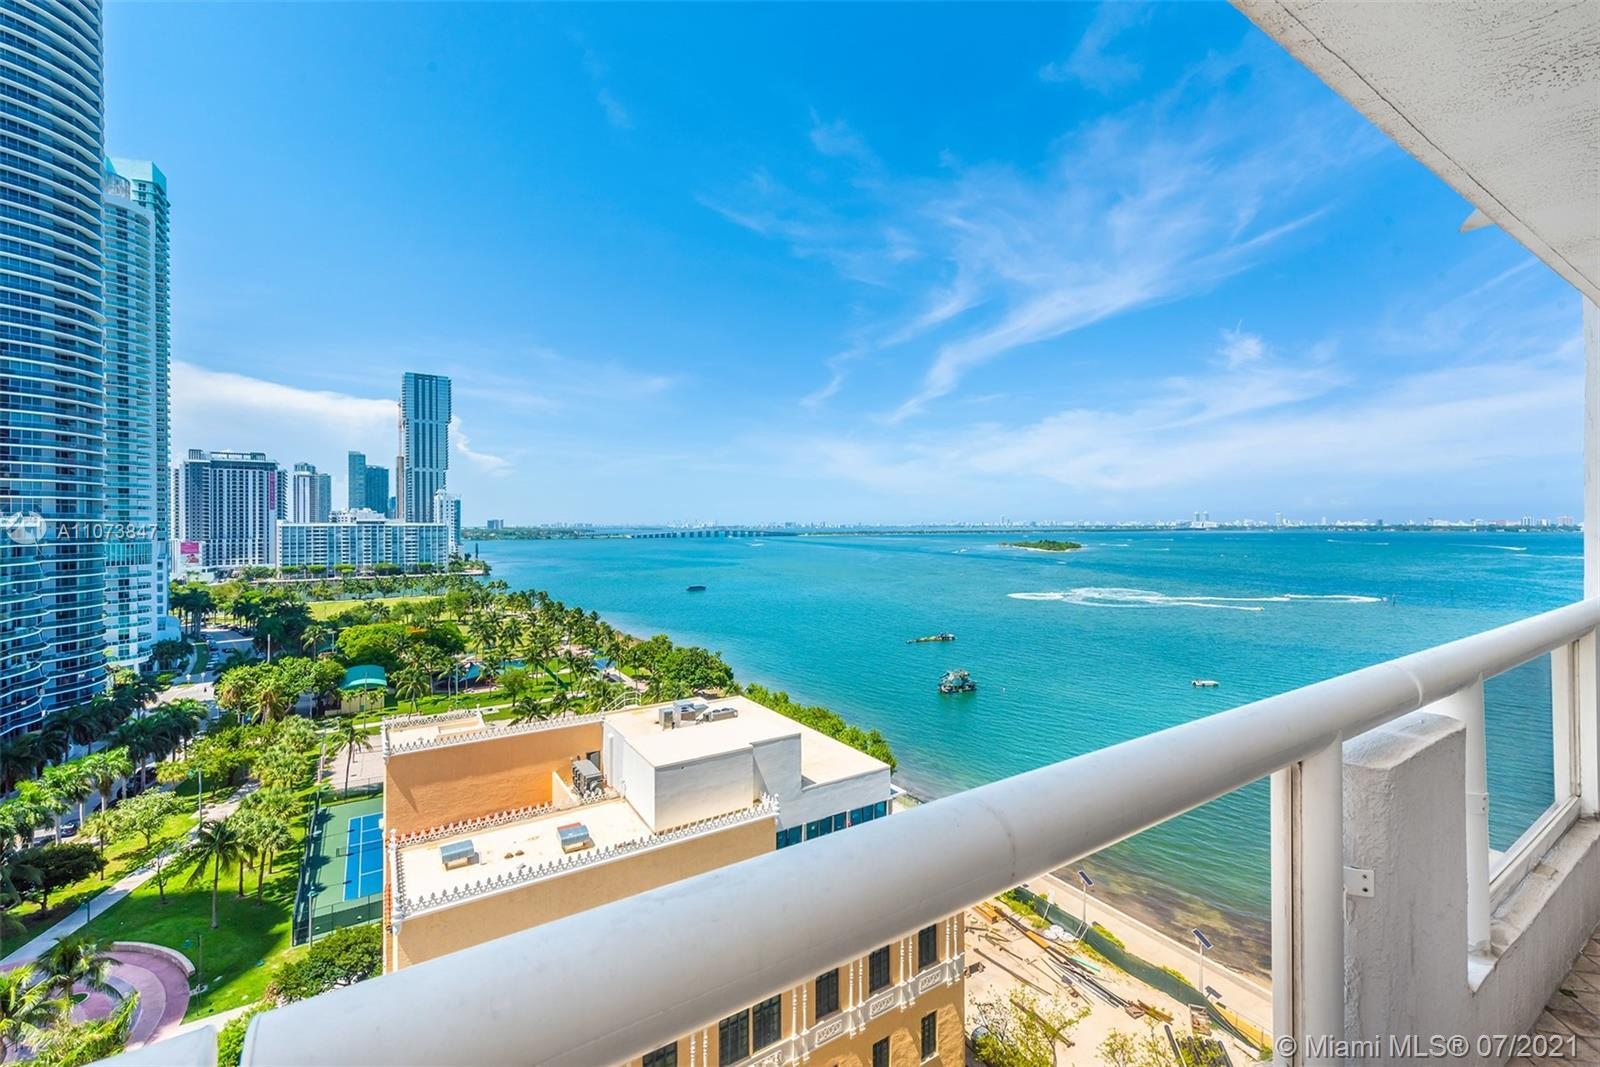 Enjoy an incredible wide view of Biscayne Bay at The Grand. This large 1 bed/ 1.5 bath is one of the